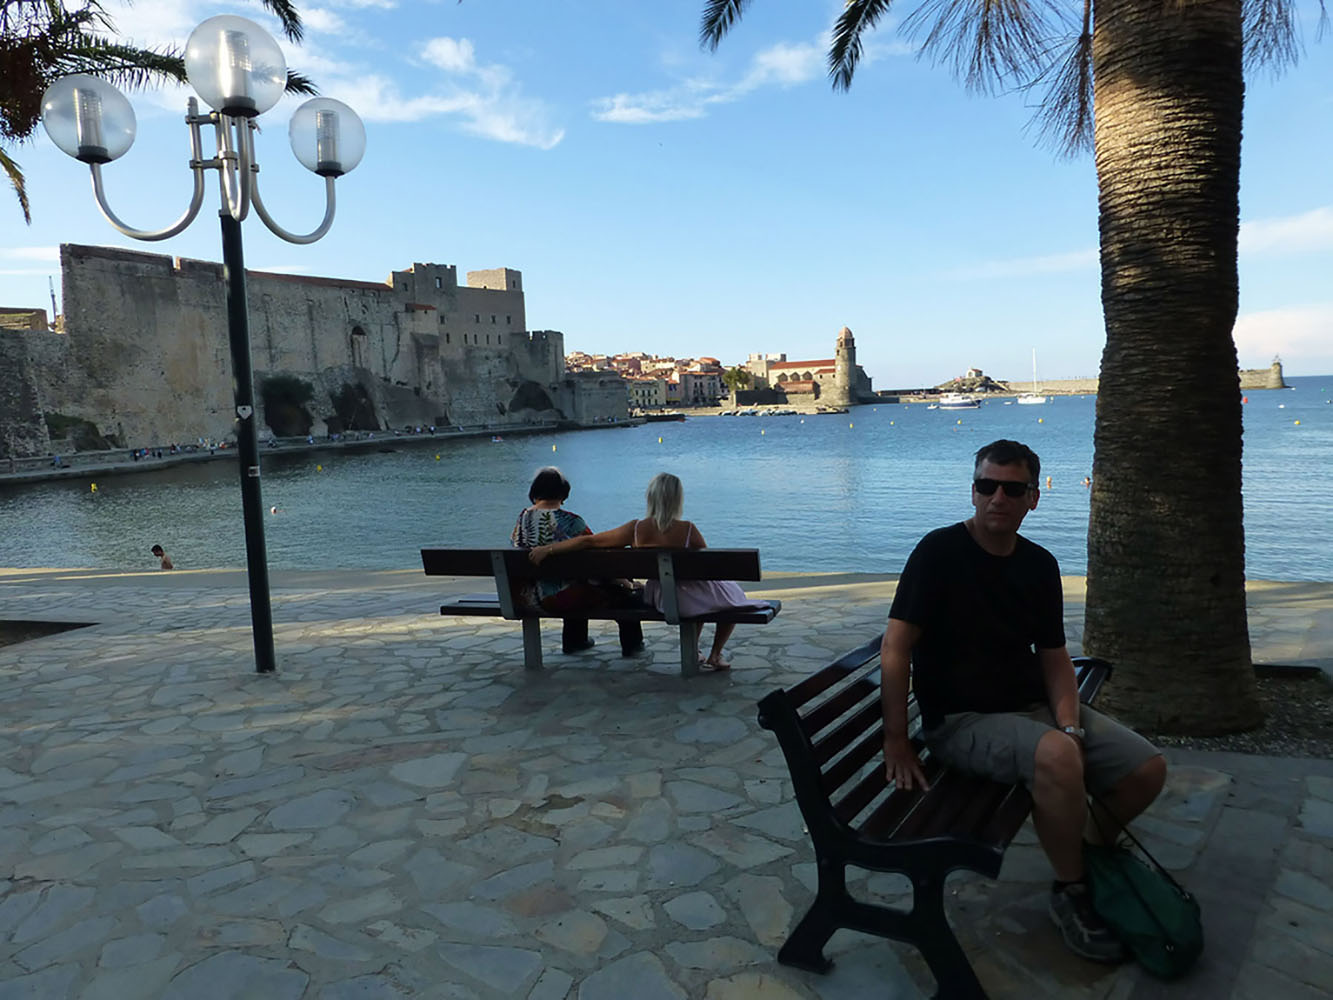 The scenic harbor of Collioure.